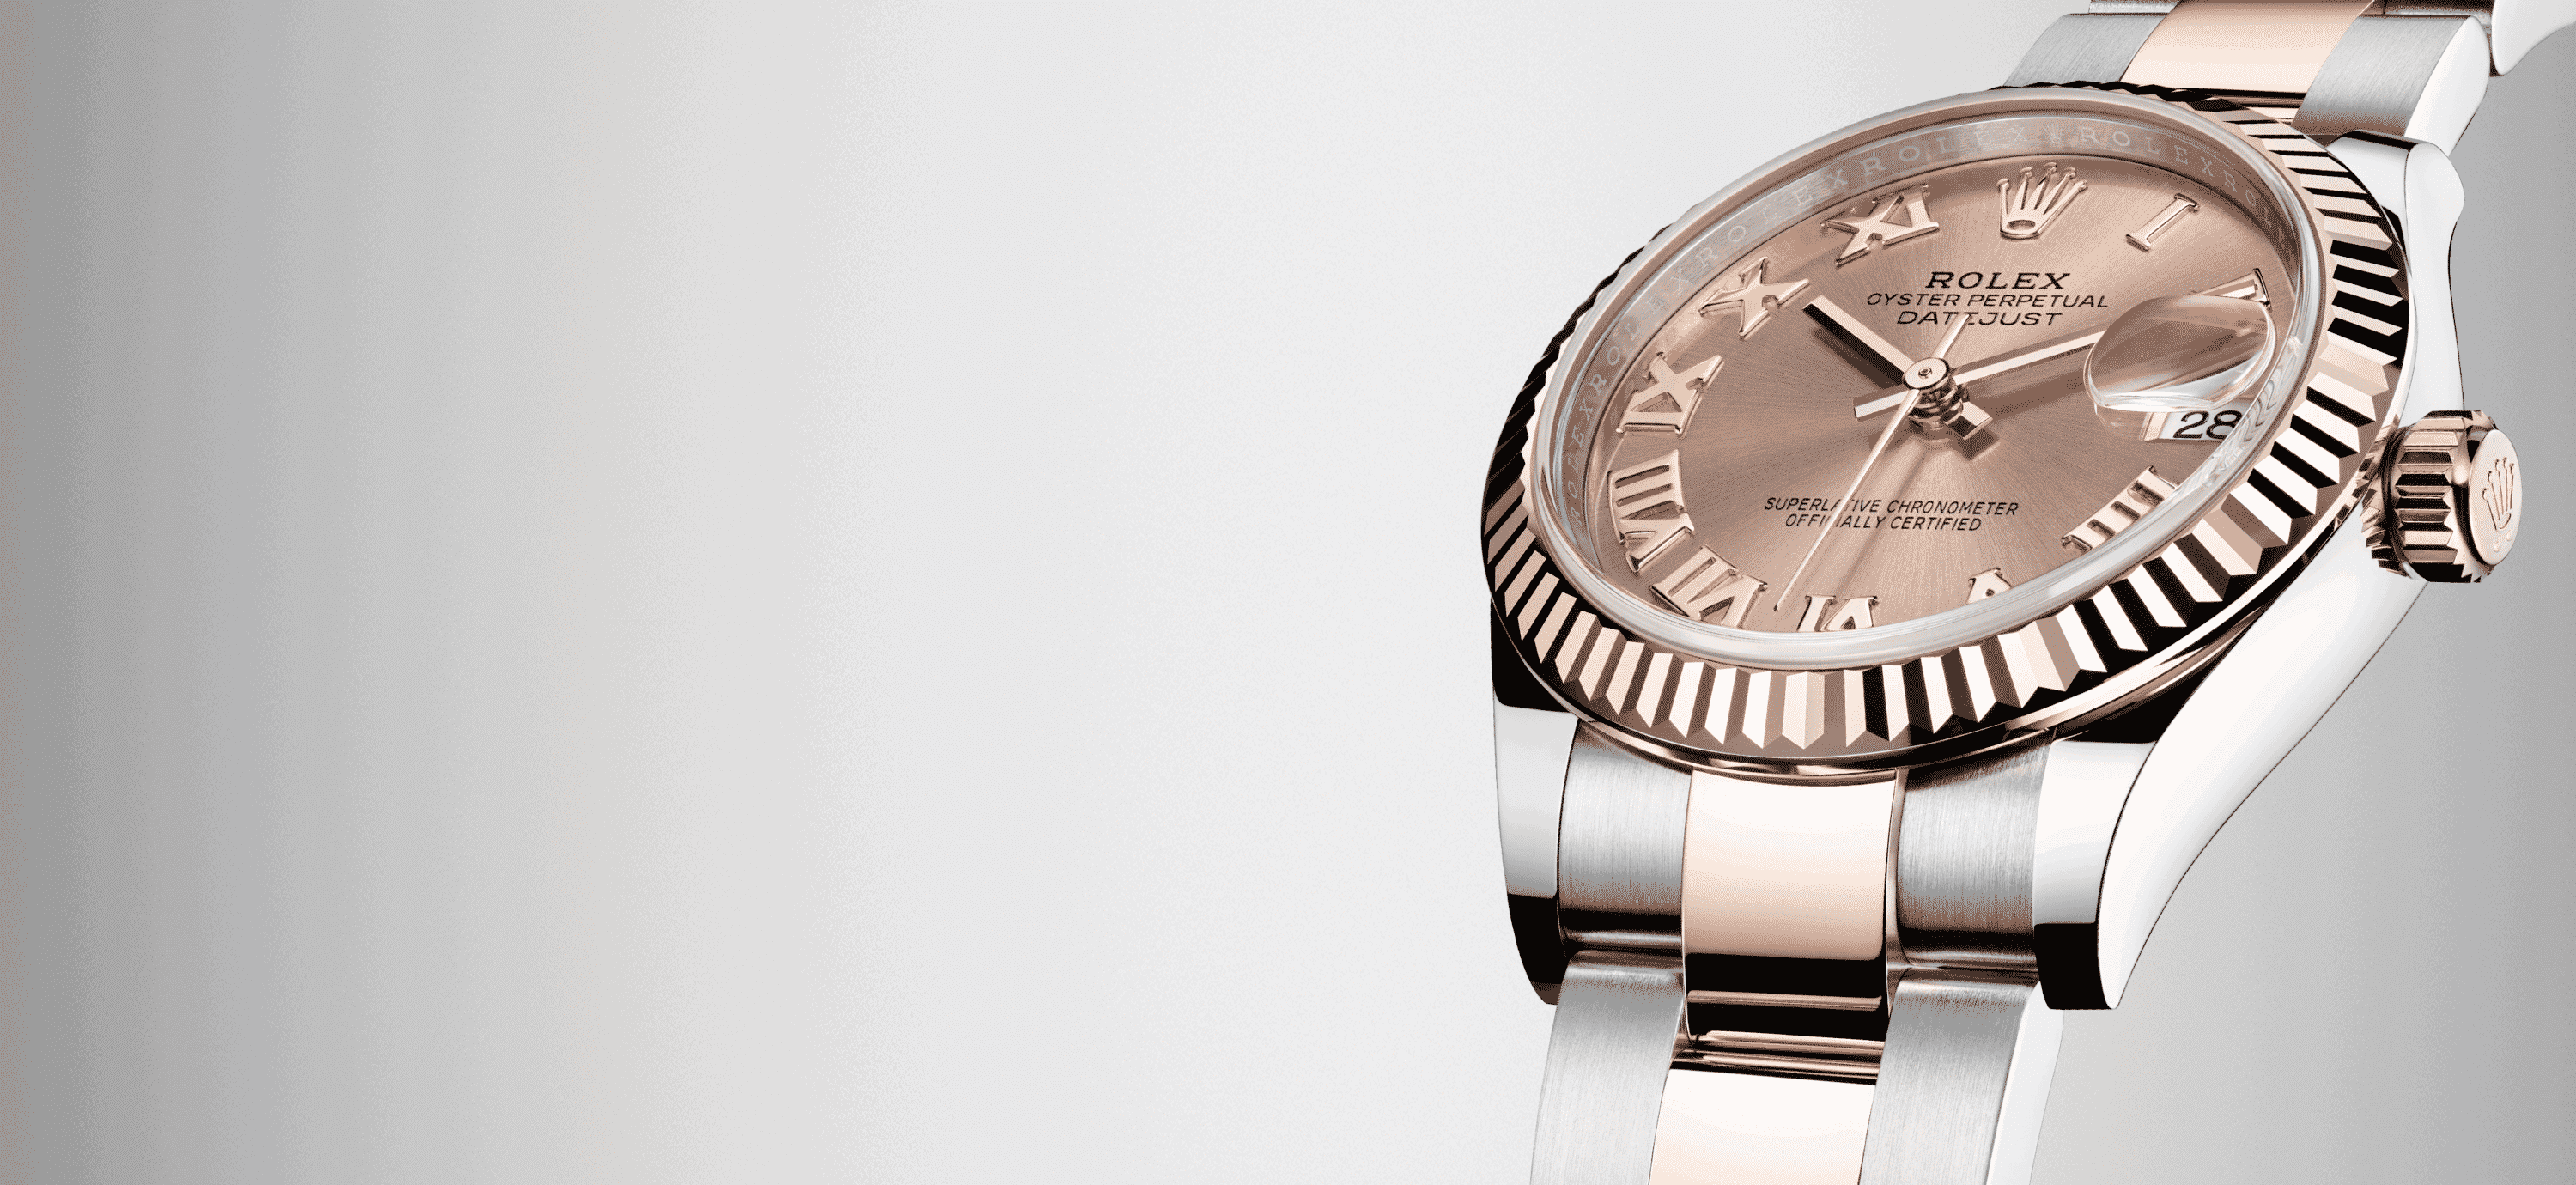 4000x1840_NO-TEXT_N-A_1-2R_DESKTOP_datejust31_M278271-0005_STATIC-PNG